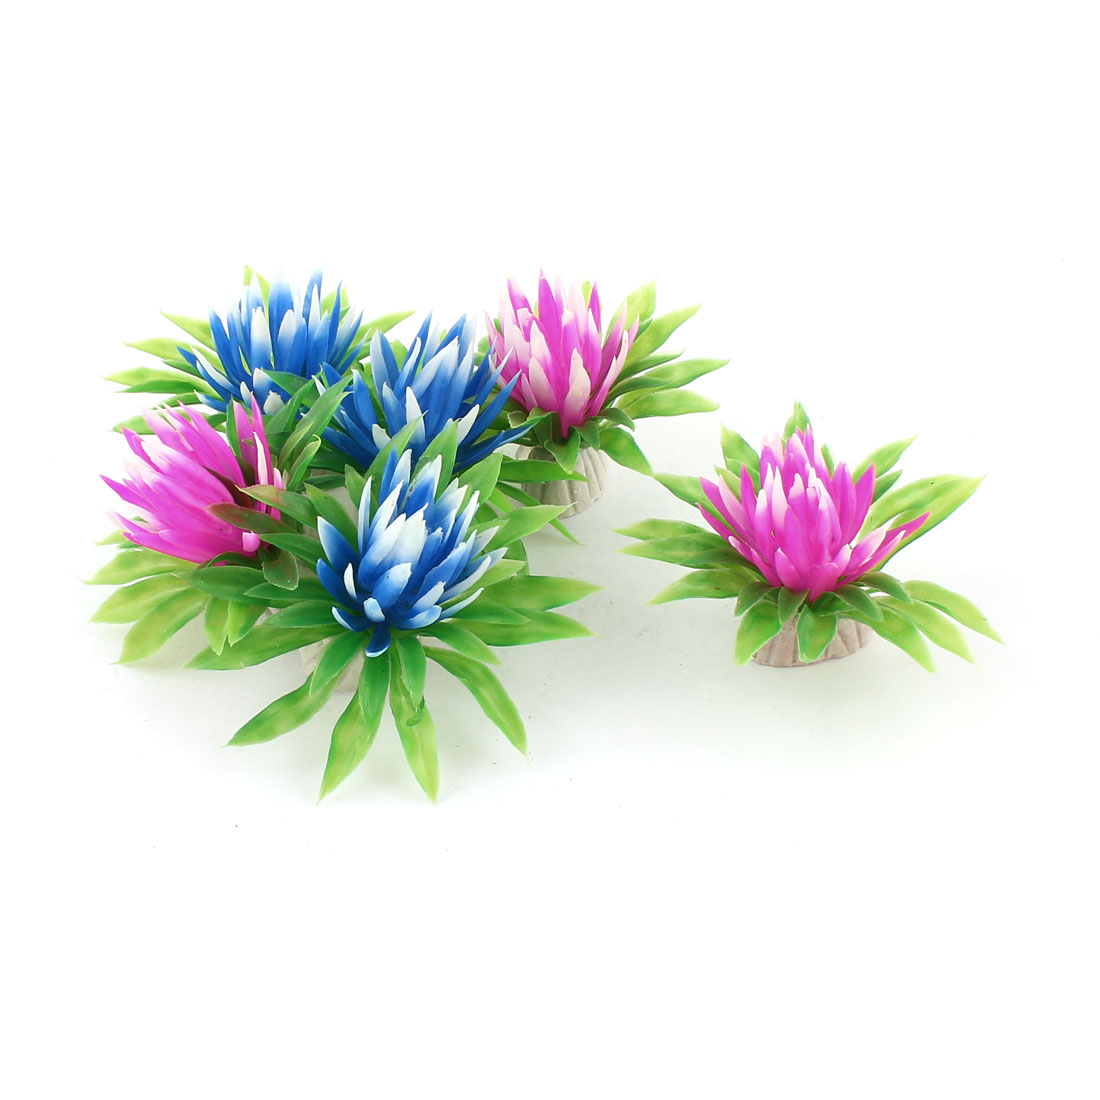 Fish Tank Blue Fushsia Green Leaves Artificial Aquatic Plant Decor 6 Pcs